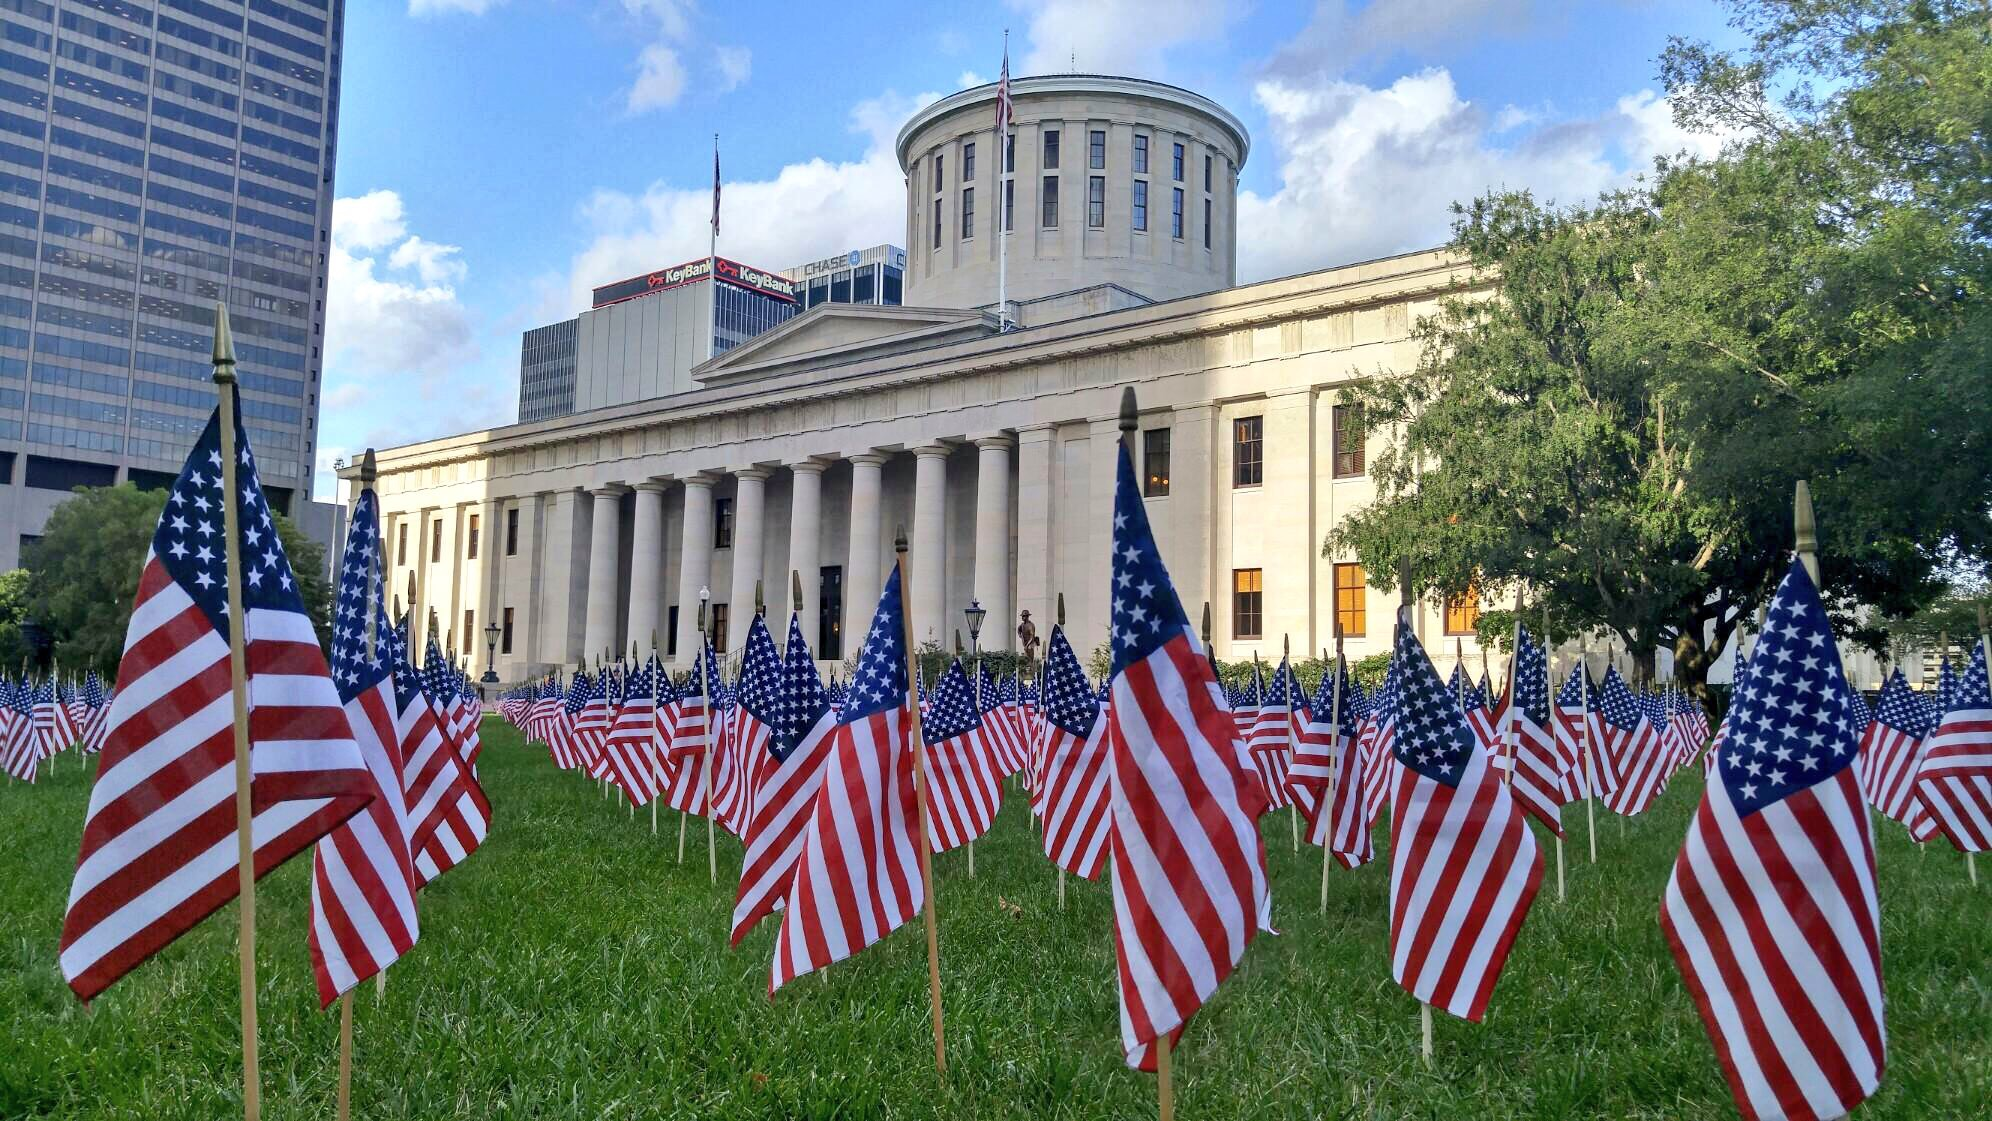 Ohio_Statehouse_911_Memorial.jpg